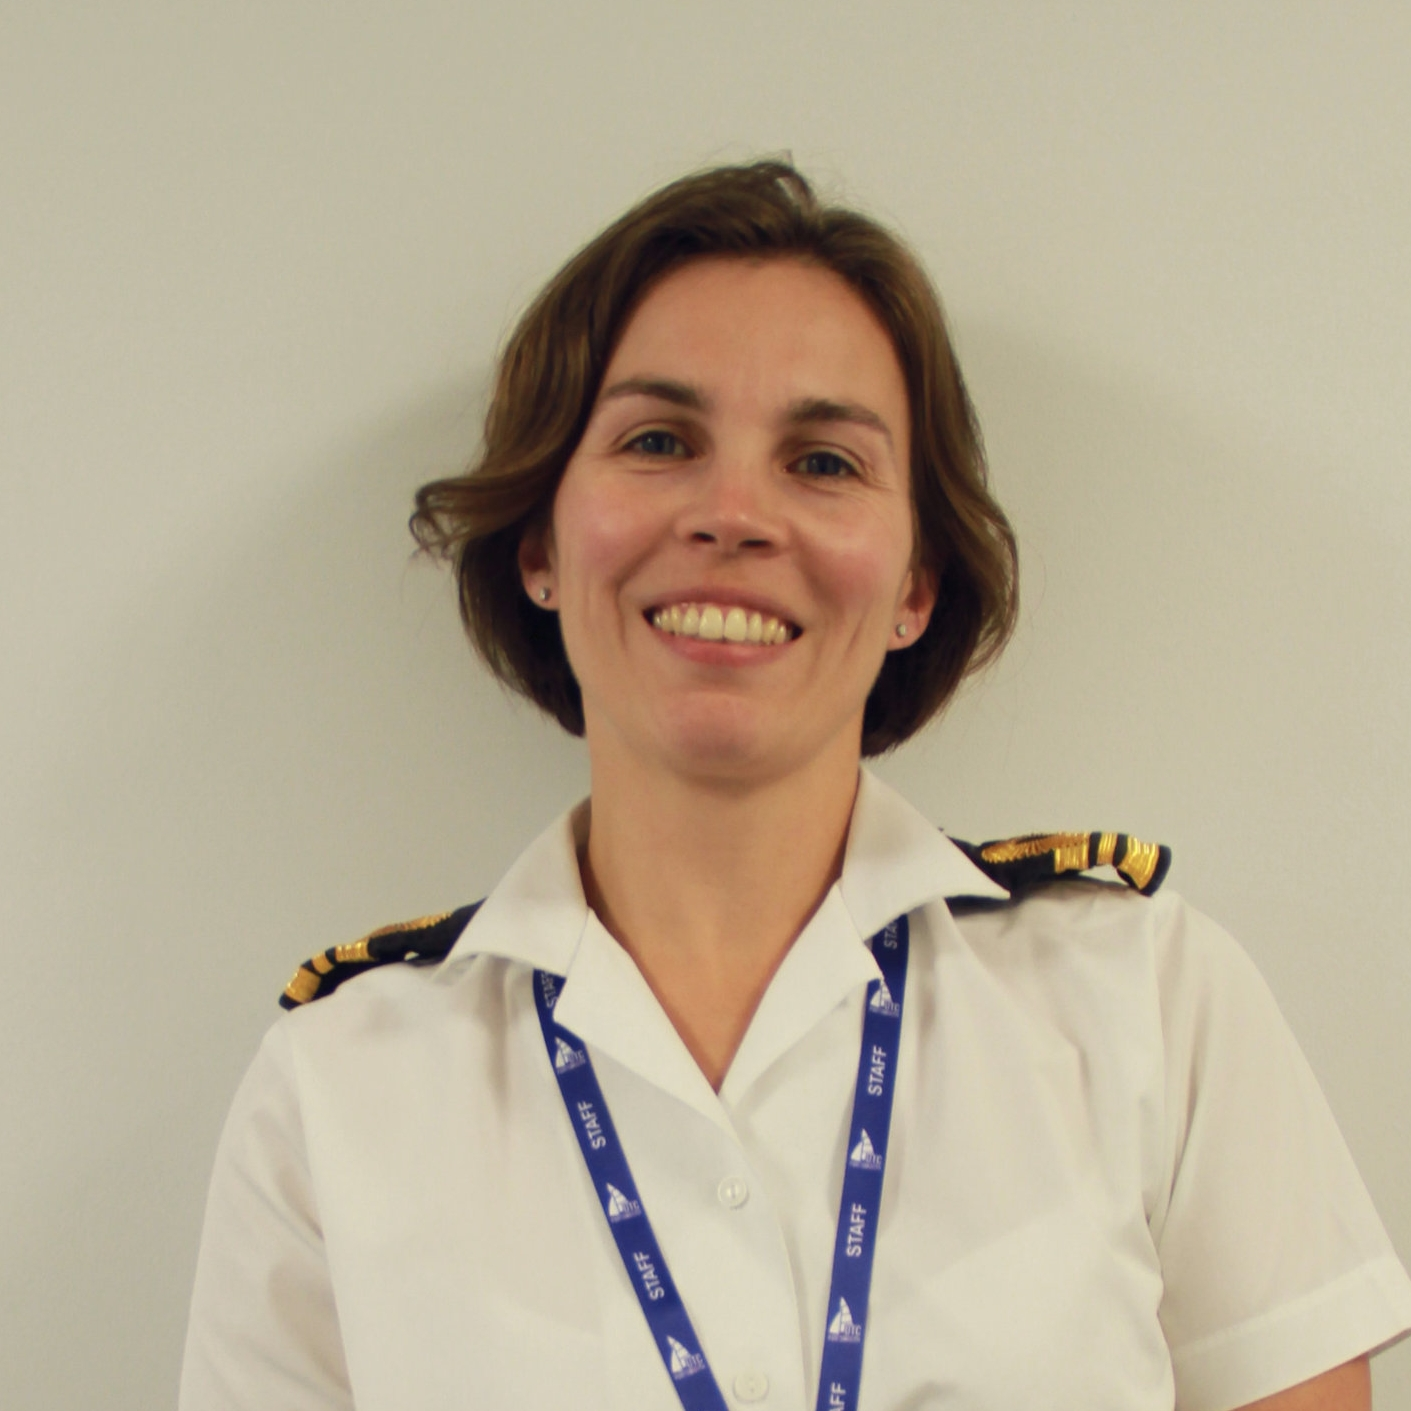 Fiona Haynes MBE - College Business Manager   Fiona is a marine engineer and project manager who joined the Royal Navy straight from school. On completion of her initial officer training, she was sponsored to read Engineering at Cambridge University before completing her naval engineering training at HMS Sultan (Gosport) and aboard various ships. Since completing her first sea job onboard helicopter carrier HMS Ocean, she has worked in a variety of roles, including visiting schools in the East and South-East of England talking about the role of the Royal Navy and encouraging take up of engineering careers. More recently, she managed the engineering shore support of two Type 23 Frigates in Plymouth, including both proactive maintenance planning and reactive repairs.  She has been attached to the UTC Portsmouth project since its early inception in 2015 as project manager and continues to be on loan from the Royal Navy as the first Business Manager. A keen runner and former bob-sledder, Fiona is now a mother to two young children and is passionate about creating a diverse education landscape for future generations.